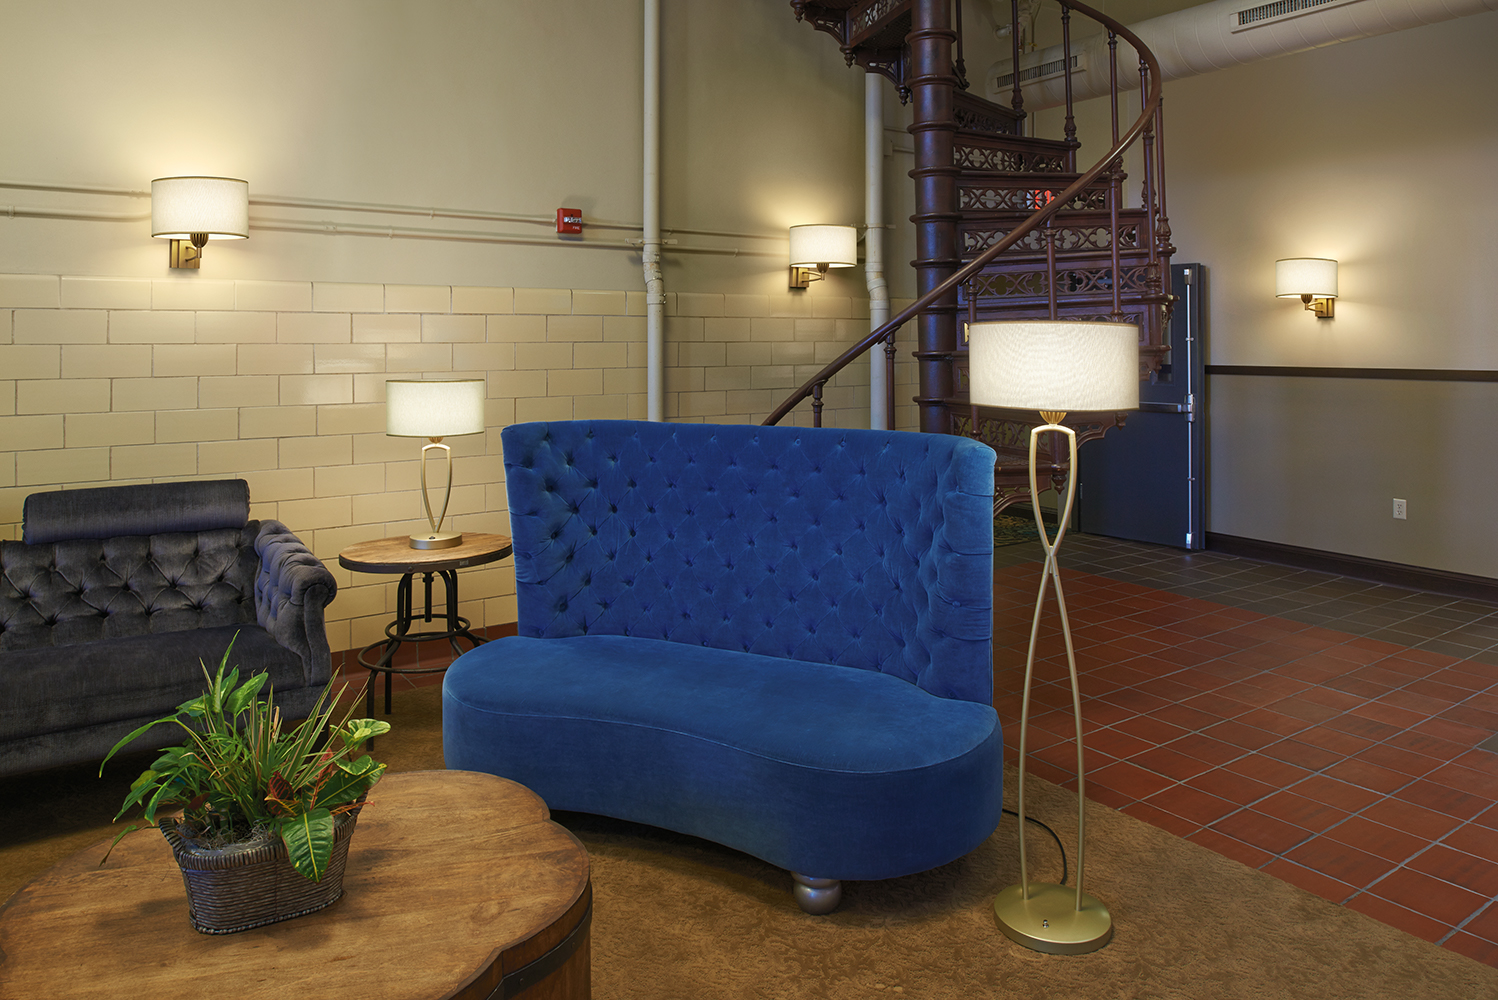 Allegro portable luminaires and wall sconces provide a soft glow in a common room for multifamily design applications.